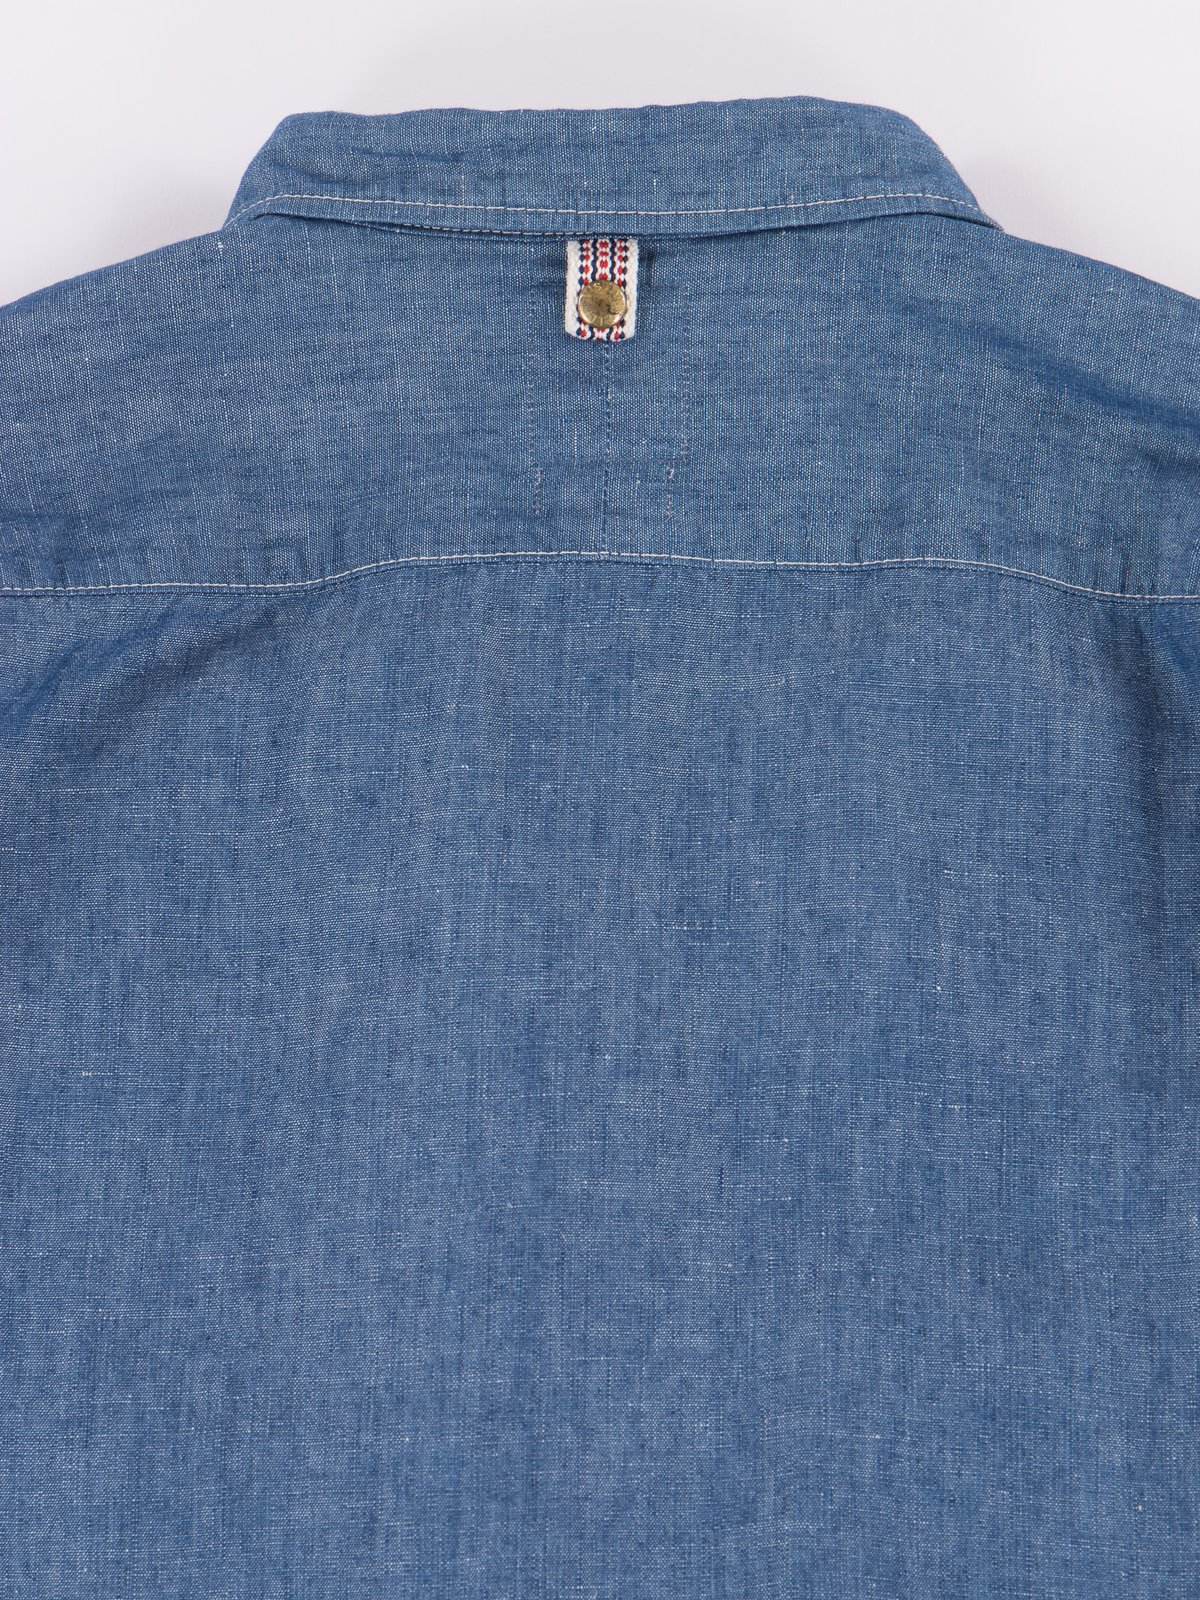 Blue Chambray Kerchief Tunic Shirt - Image 5